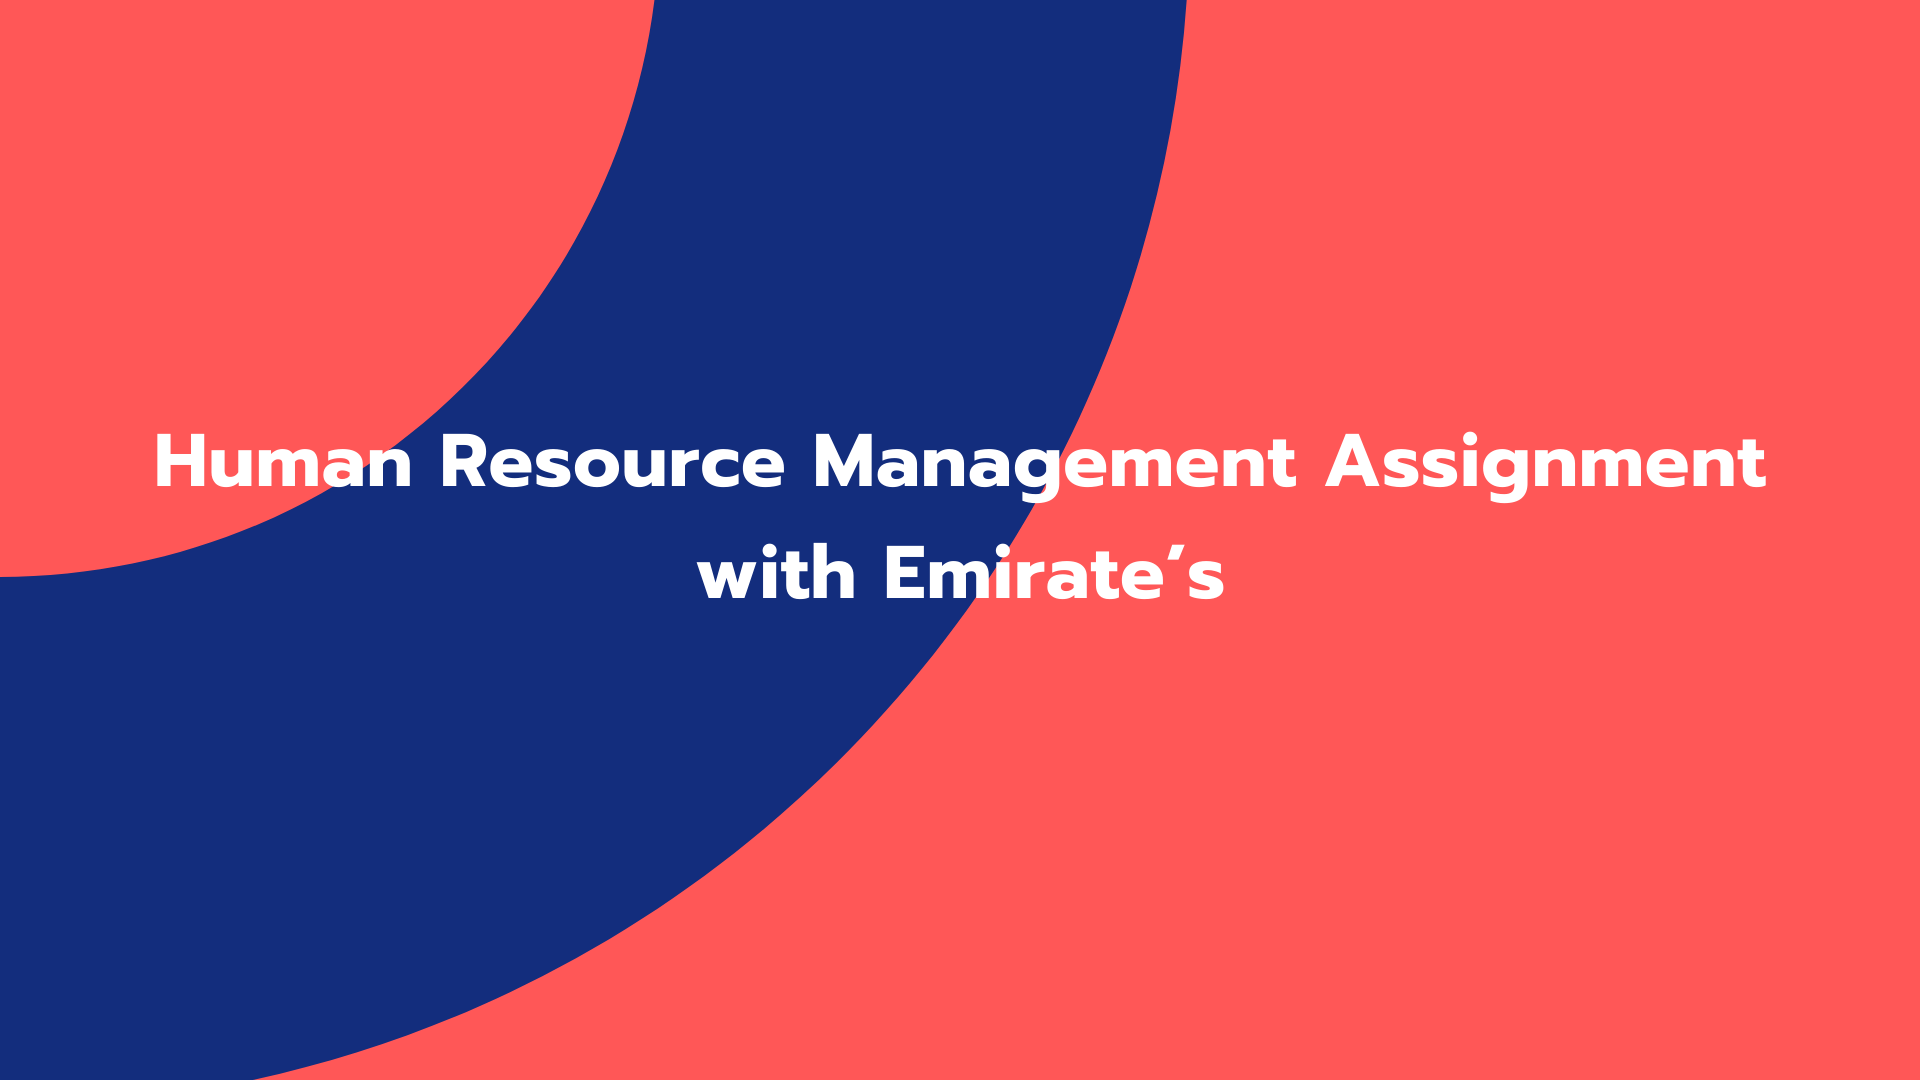 Human Resource Management Assignment with Emirate's